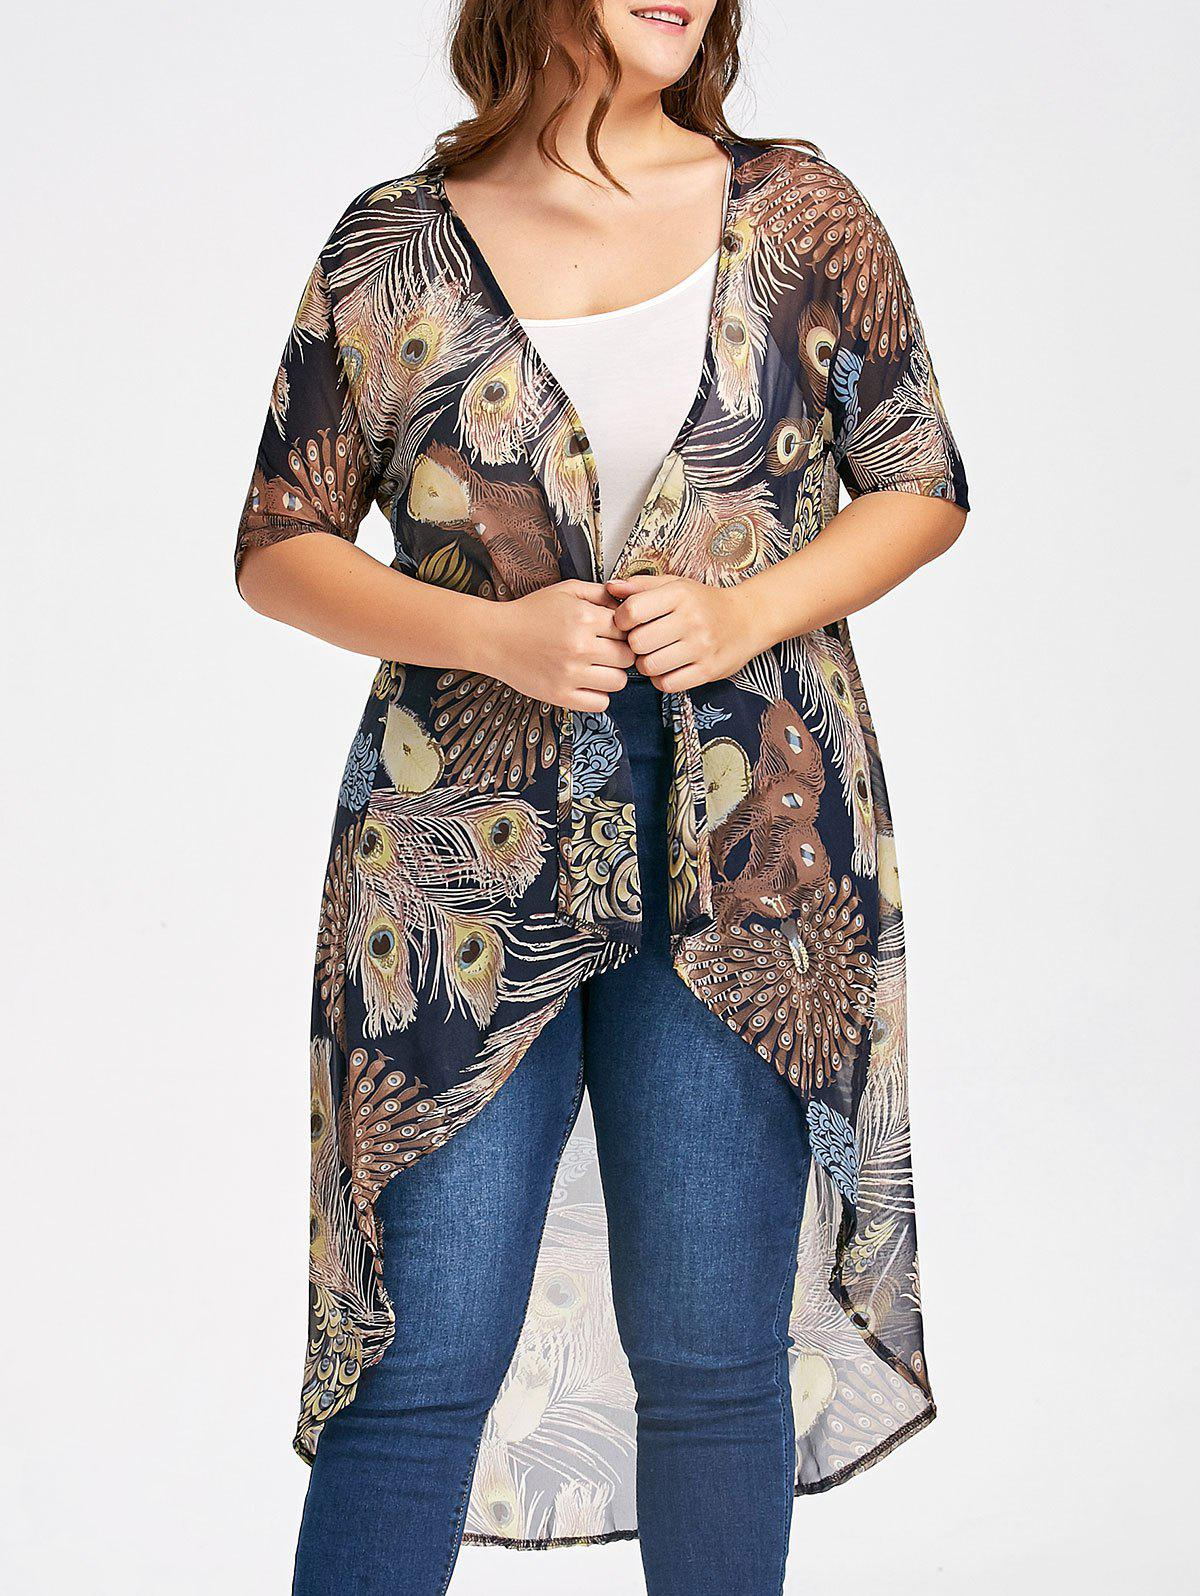 Plus Size Feather Printed  Long Chiffon Kimono TopWOMEN<br><br>Size: 2XL; Color: BROWN; Material: Polyester; Fabric Type: Chiffon; Shirt Length: Long; Sleeve Length: Short; Collar: Collarless; Style: Fashion; Season: Fall,Spring; Pattern Type: Print; Weight: 0.1500kg; Package Contents: 1 x Top;